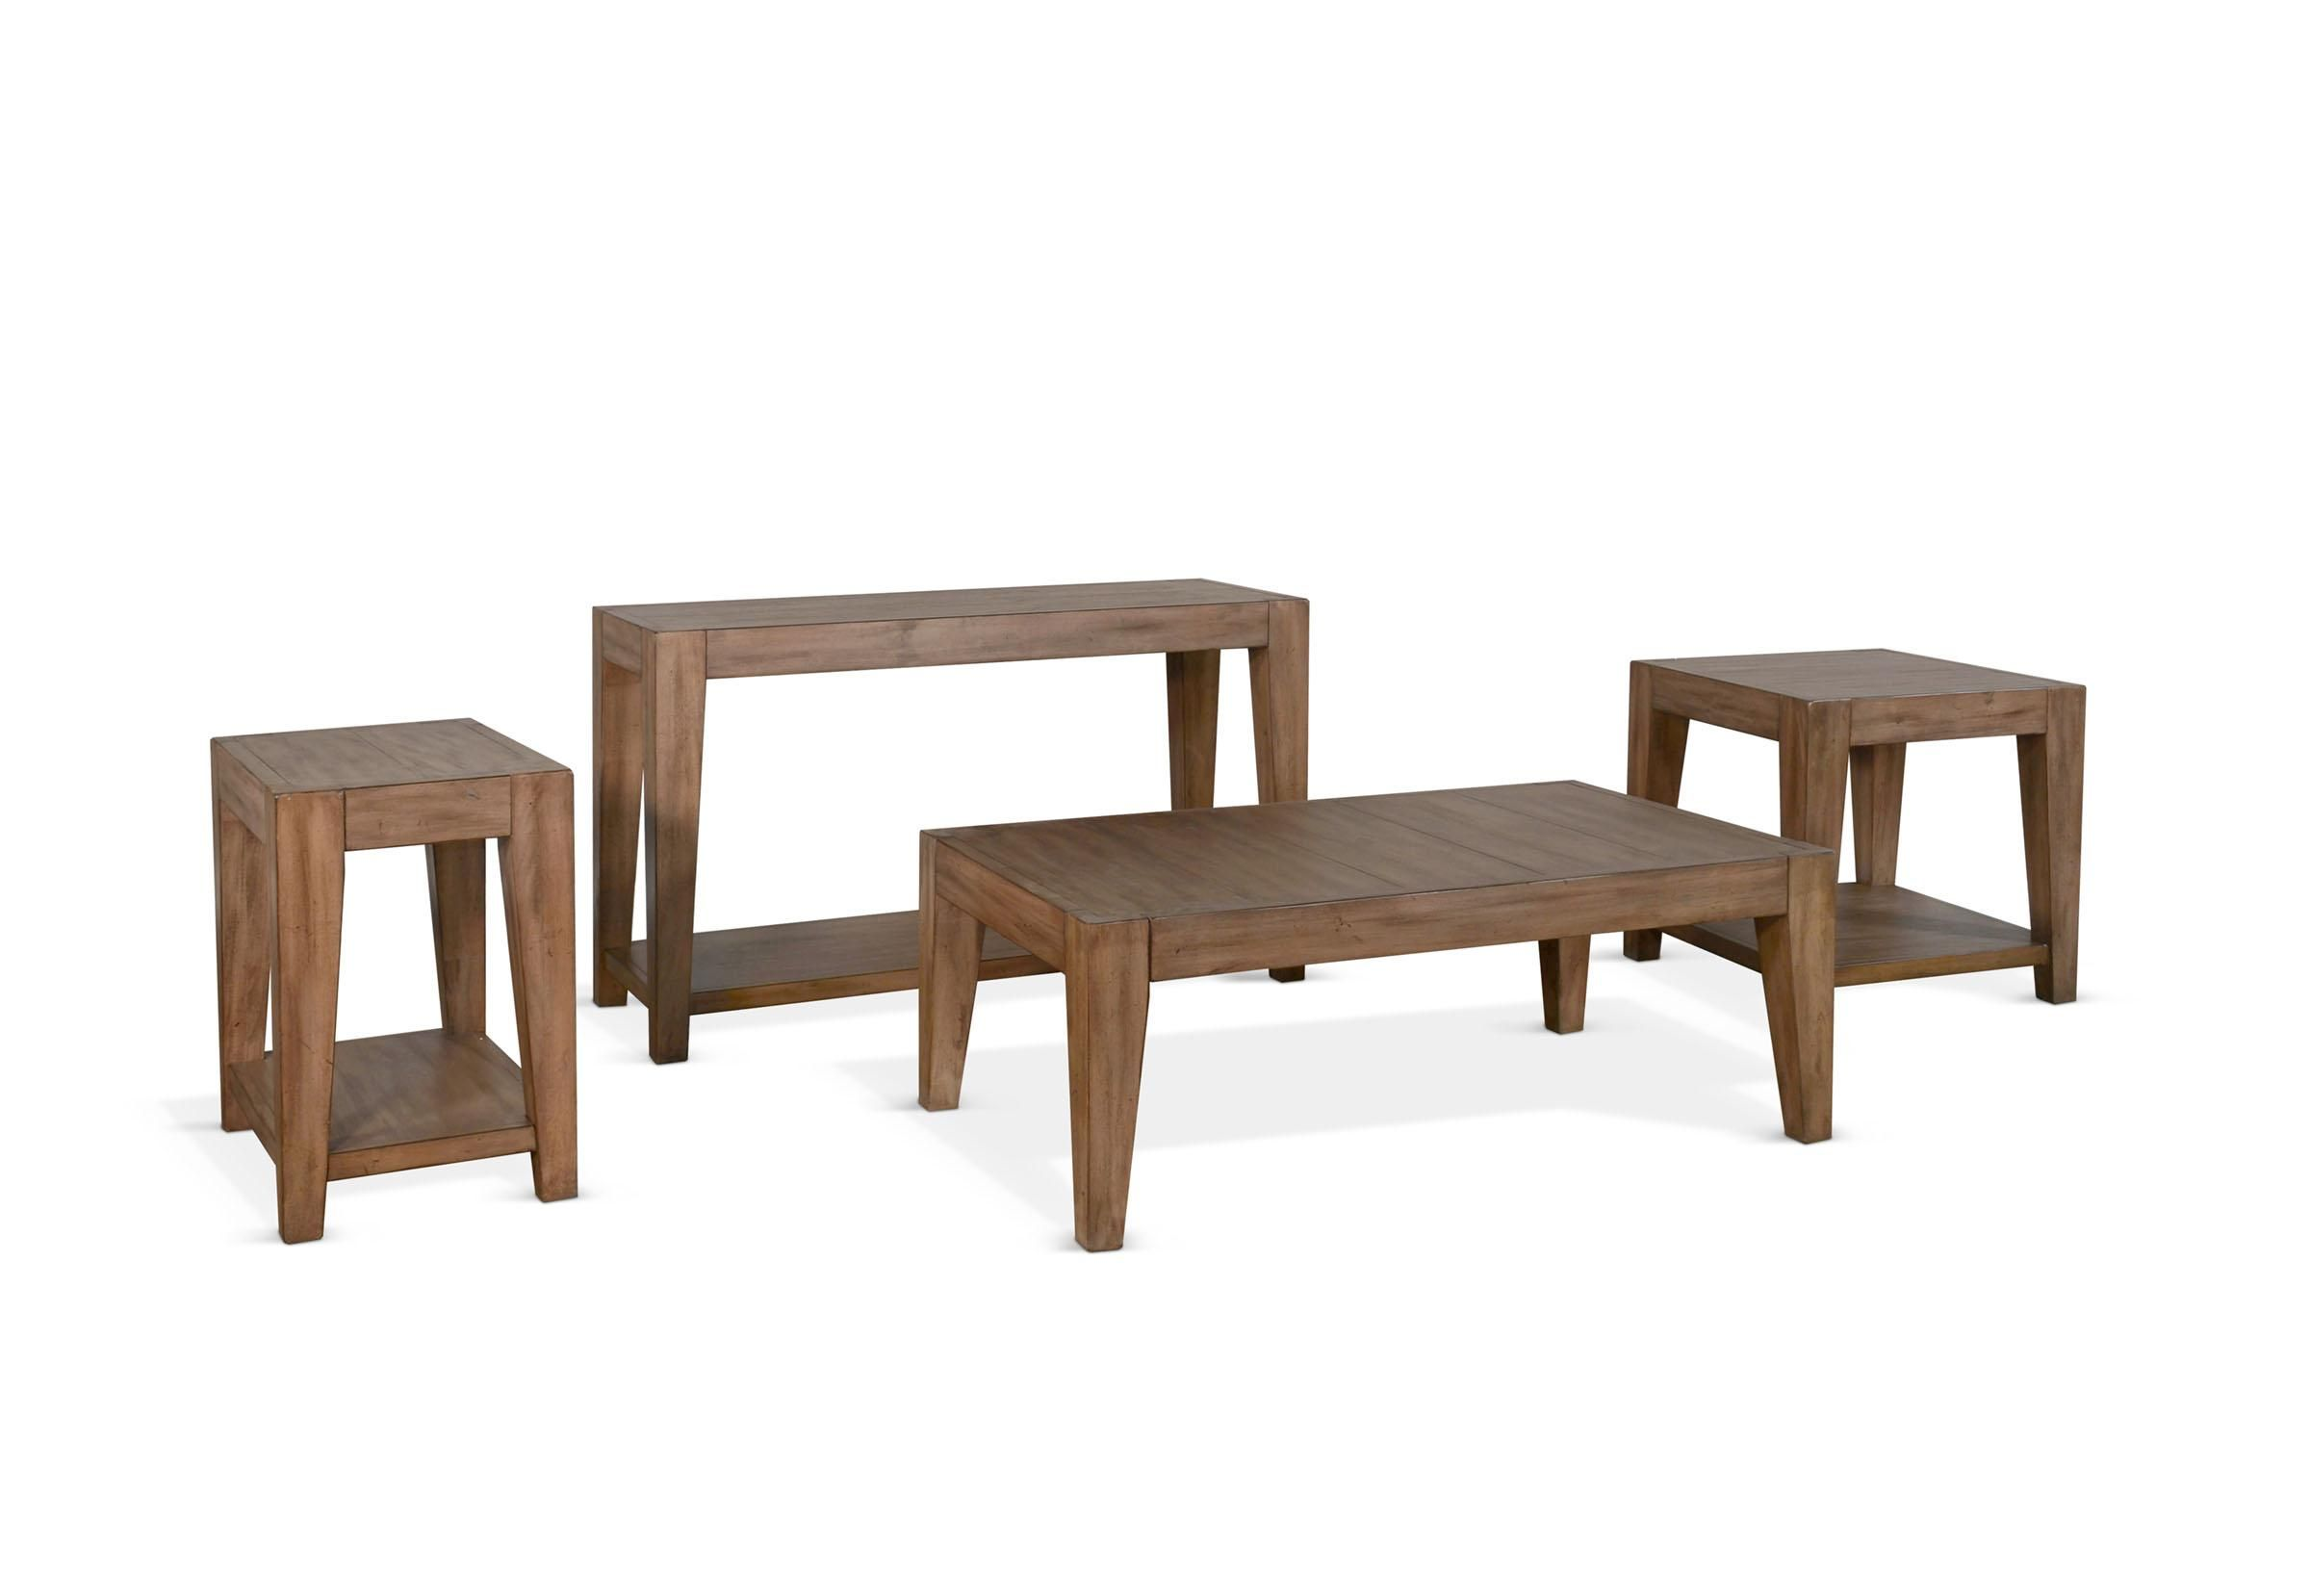 Transitional Coffee Table Doe Valley In 2021 Sofa Tables For Sale Coffee Table End Tables For Sale [ 1658 x 2400 Pixel ]